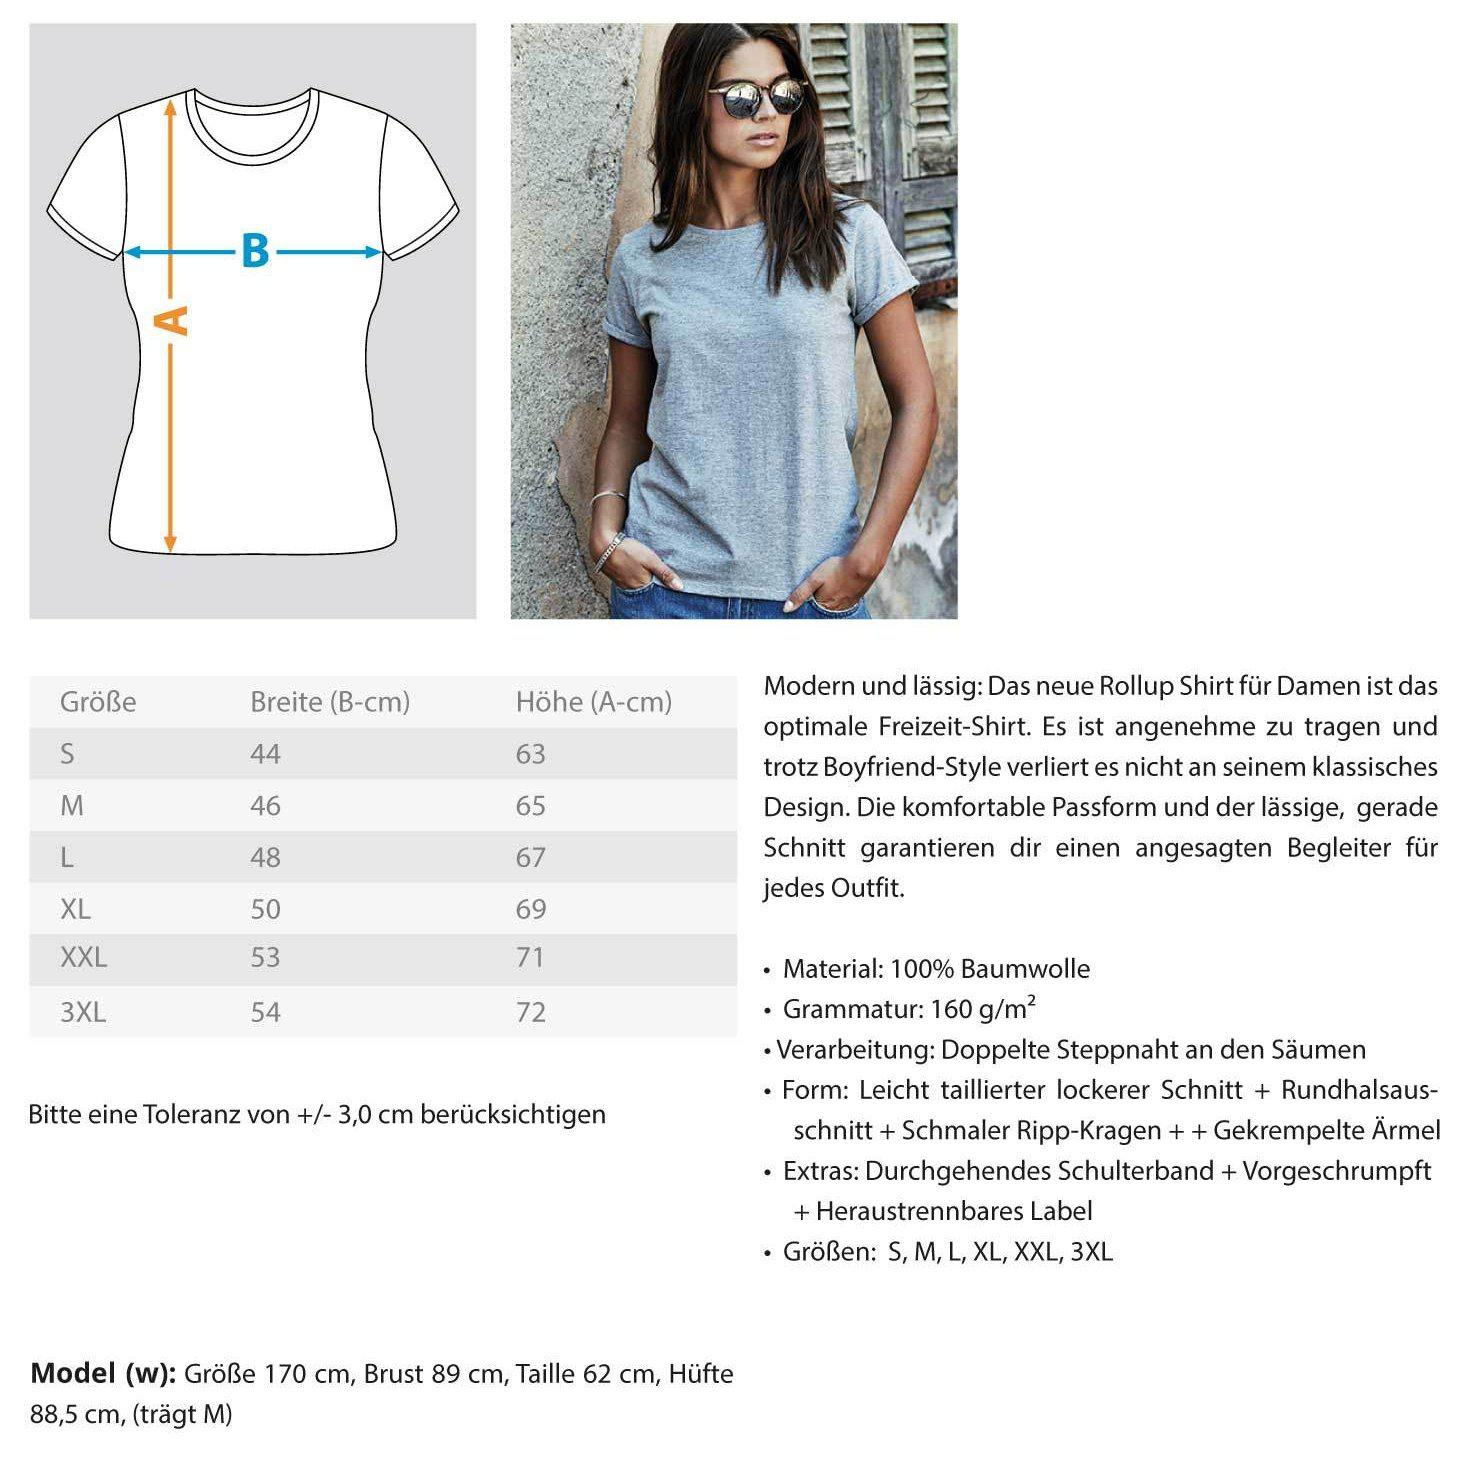 Ha kuna Ma Tekkno - Rave On!® - Damen RollUp Shirt Women Rollup Shirt - Rave On!® der Club & Techno Szene Shop für Coole Junge Mode Streetwear Style & Fashion Outfits + Sexy Festival 420 Stuff